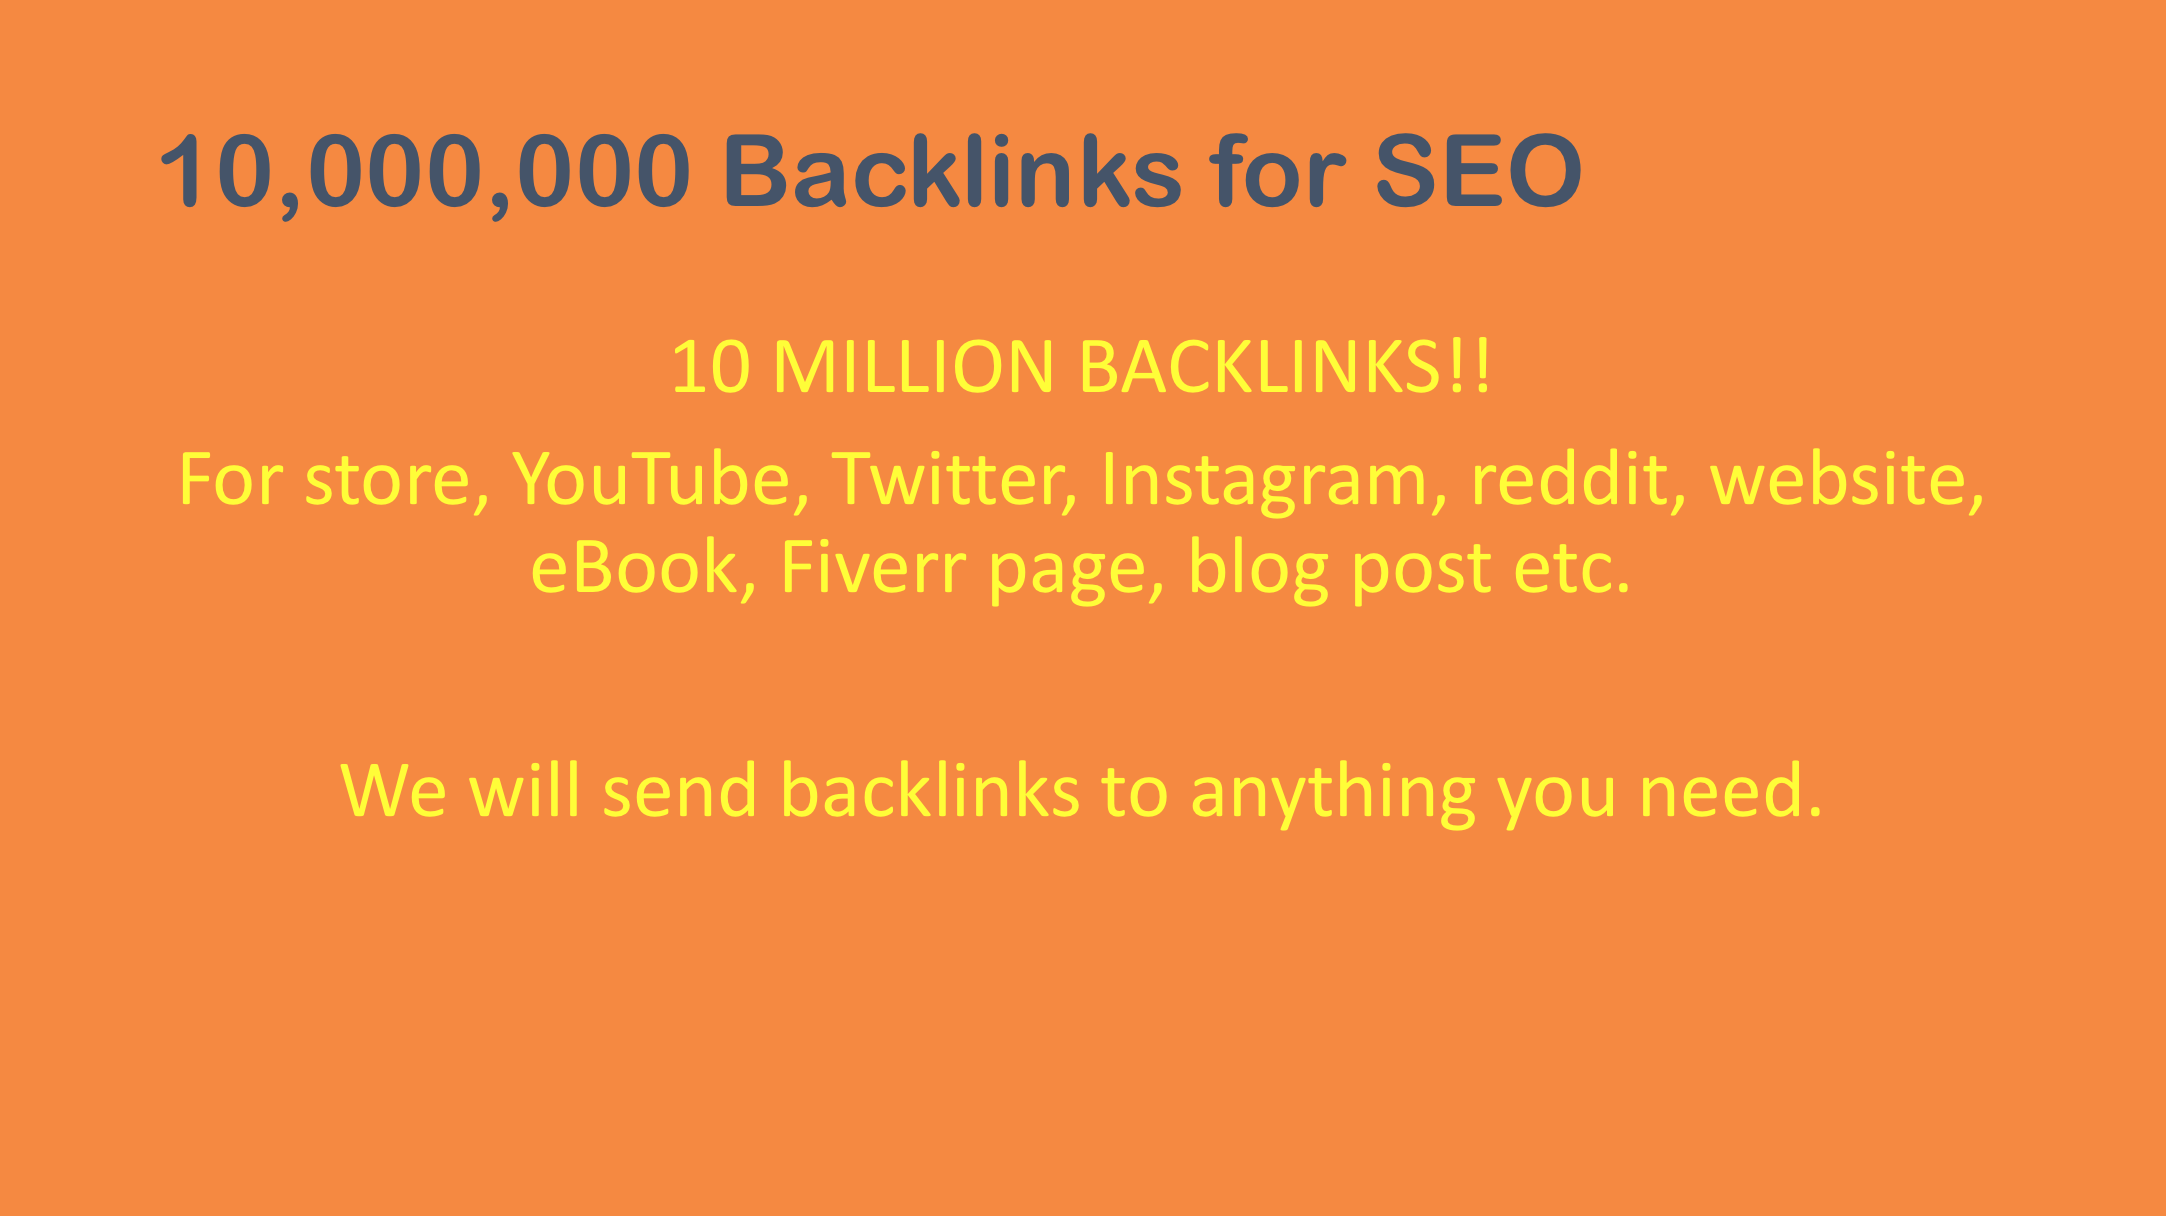 10 Million Backlinks for Website,  YouTube etc.